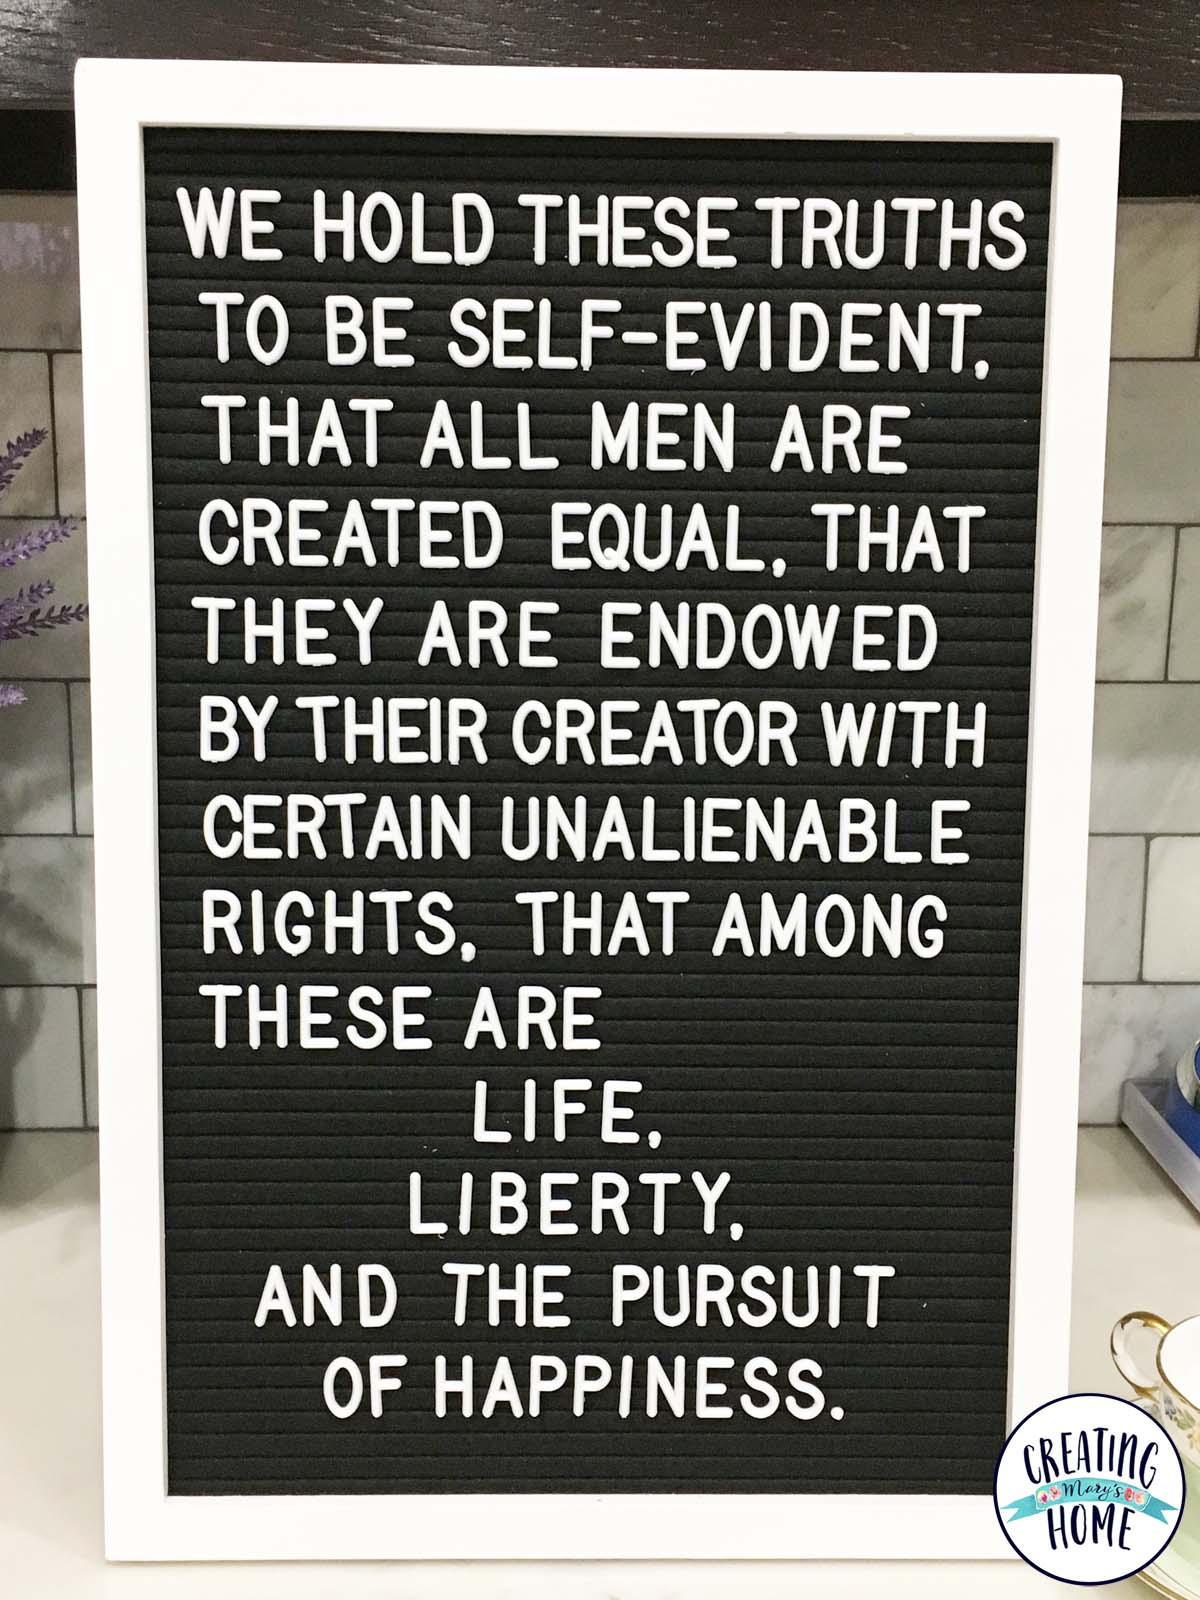 Quote - we hold these truths to be self-evident that all